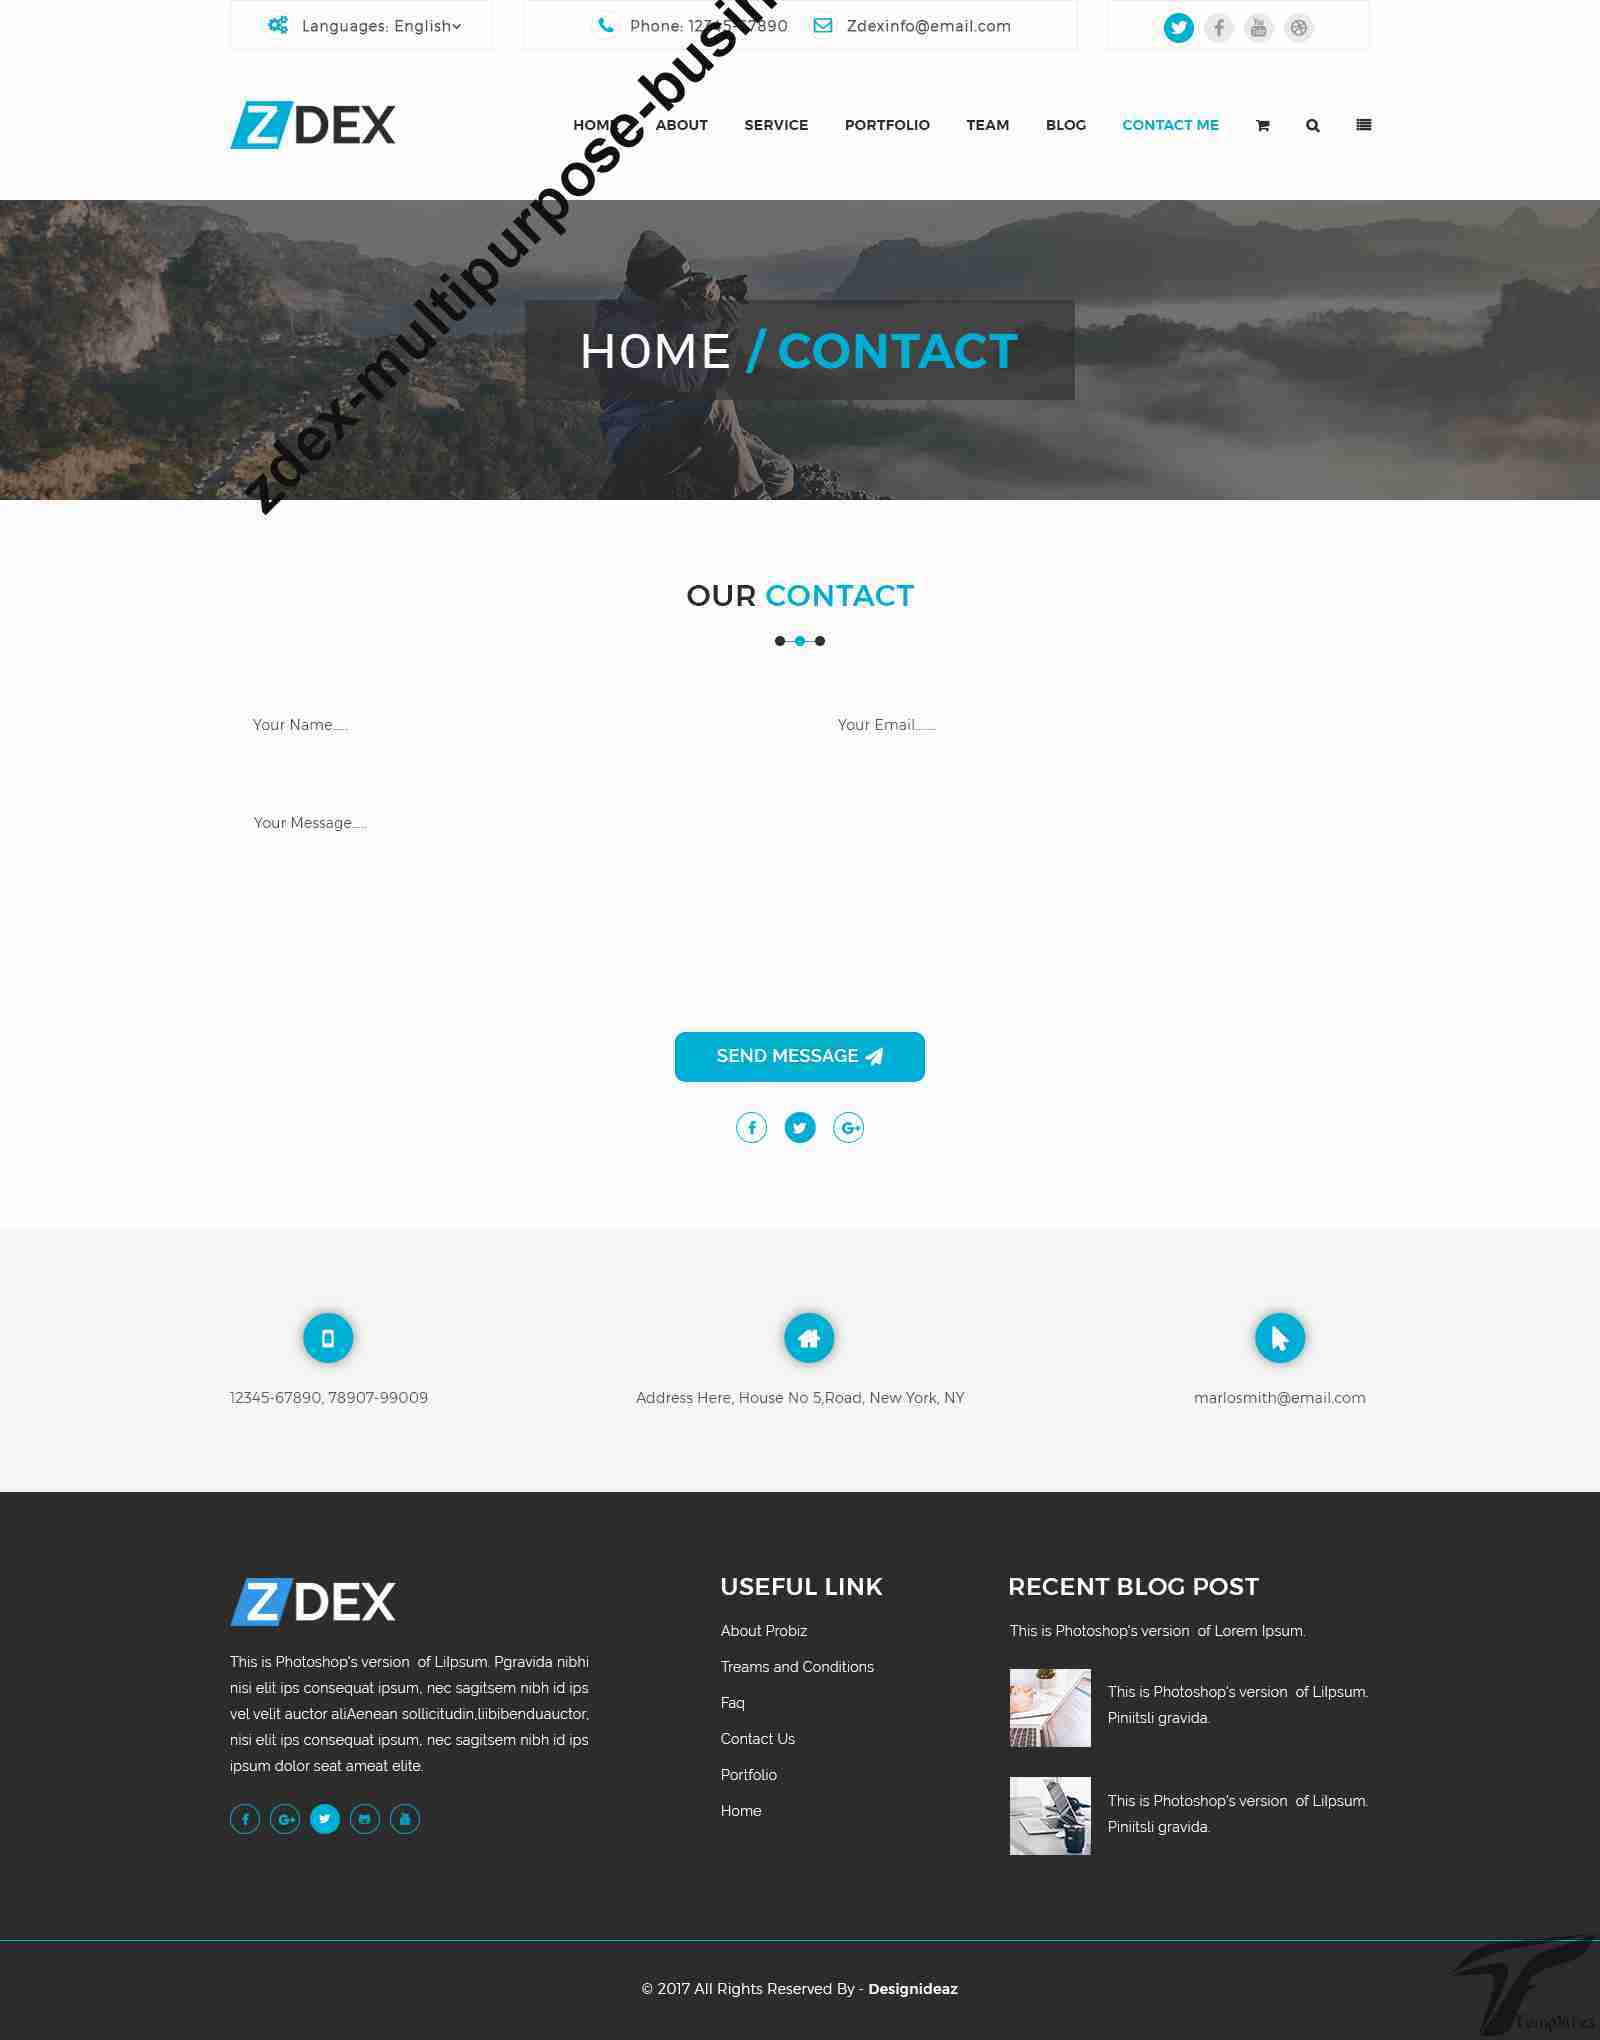 https://images.besthemes.com/images/h1_zdex-multipurpose-business-and-agency-template8-_-247998655/Screenshots/08_Conatct-s20s-Page.jpg